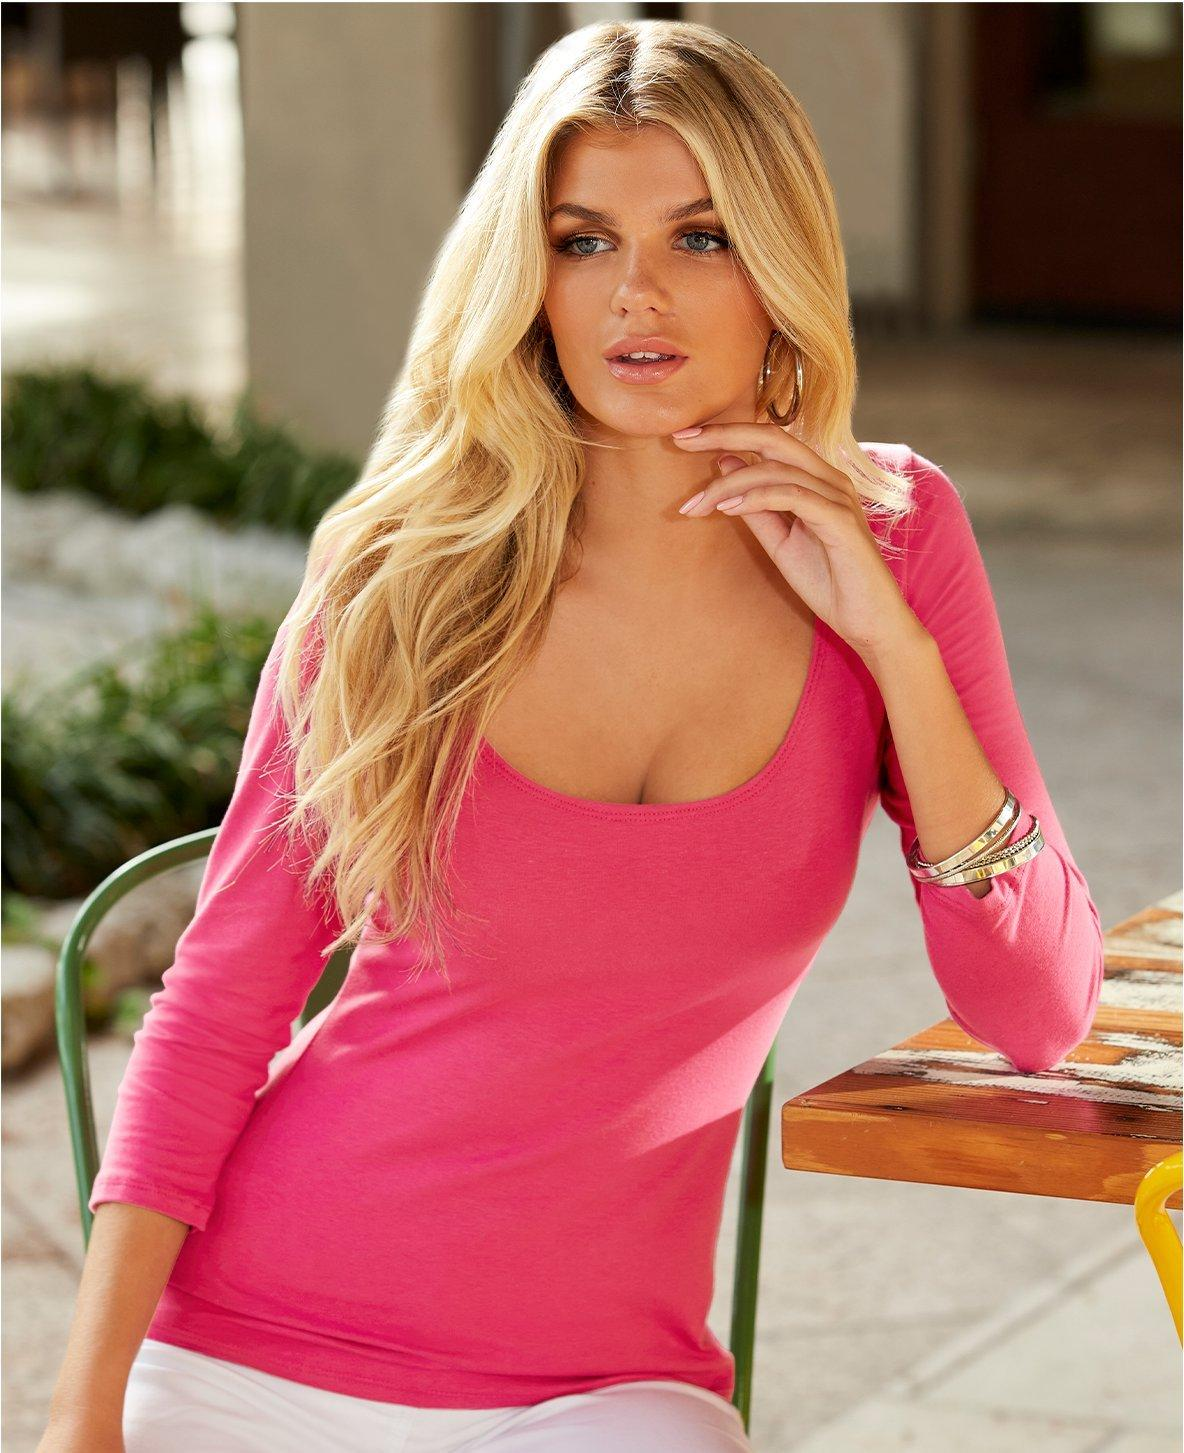 model wearing a pink three-quarter sleeve scoop neck top.